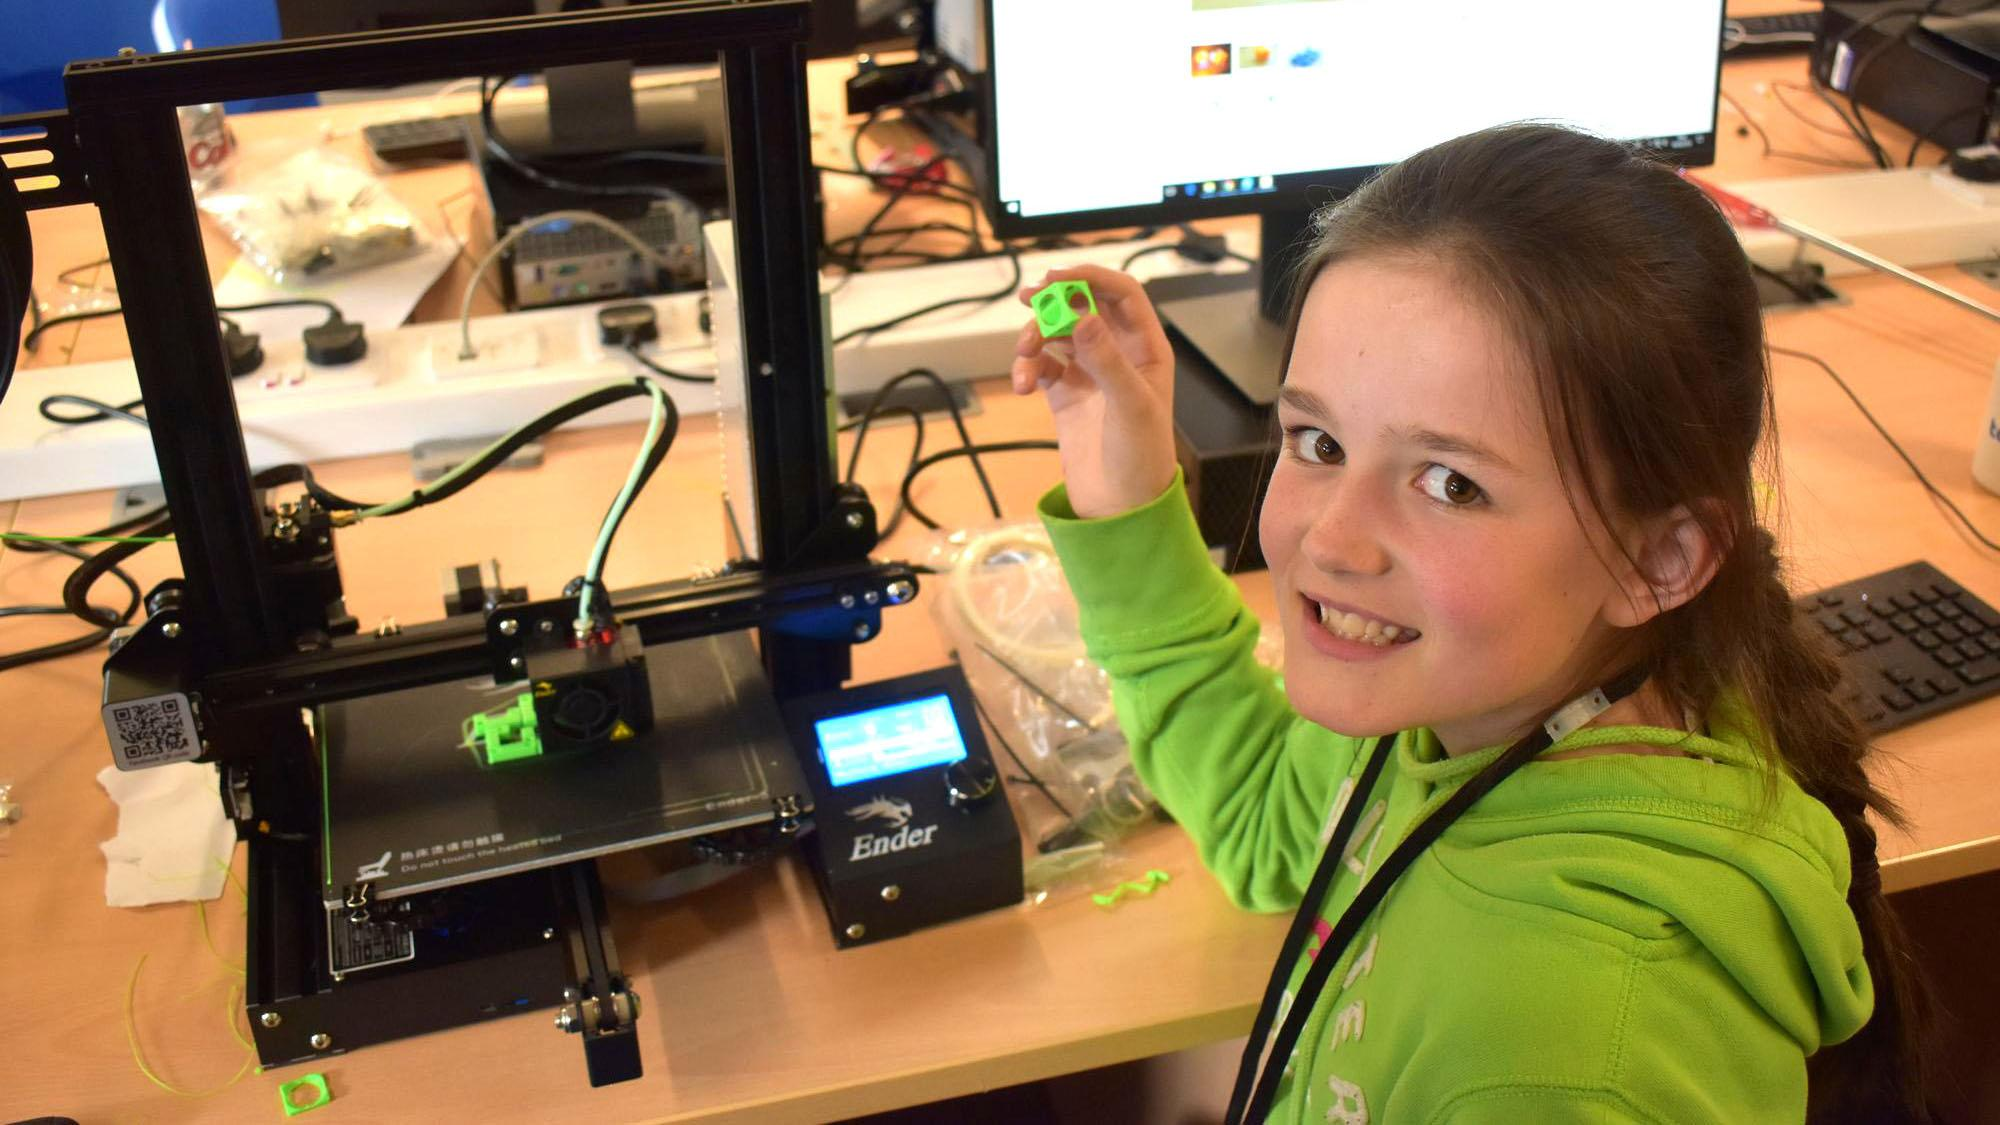 Girl using a 3D printer